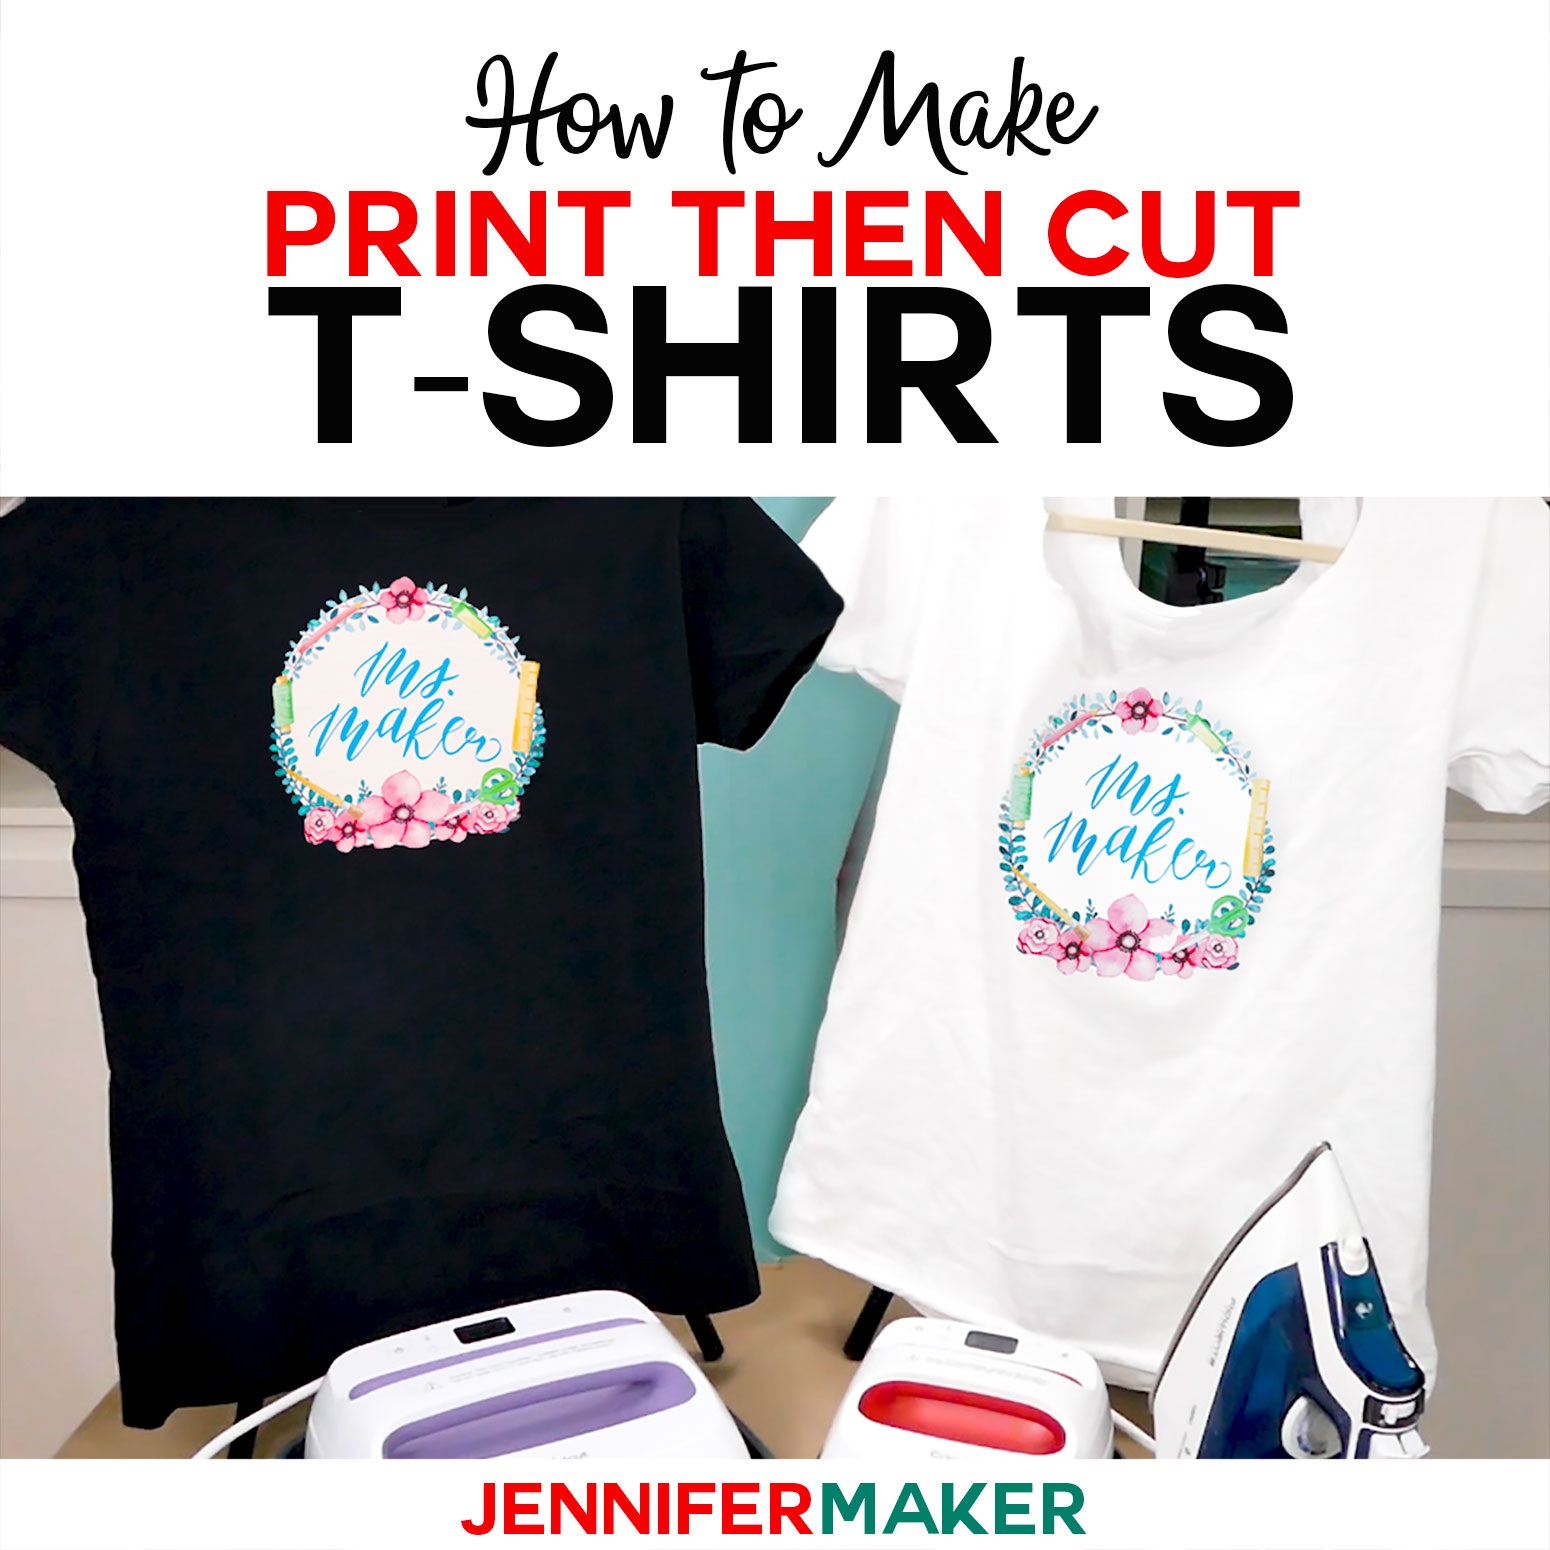 photograph relating to Printable Iron Ons named Print Then Minimize Cricut Move T-Shirts - Jennifer Producer